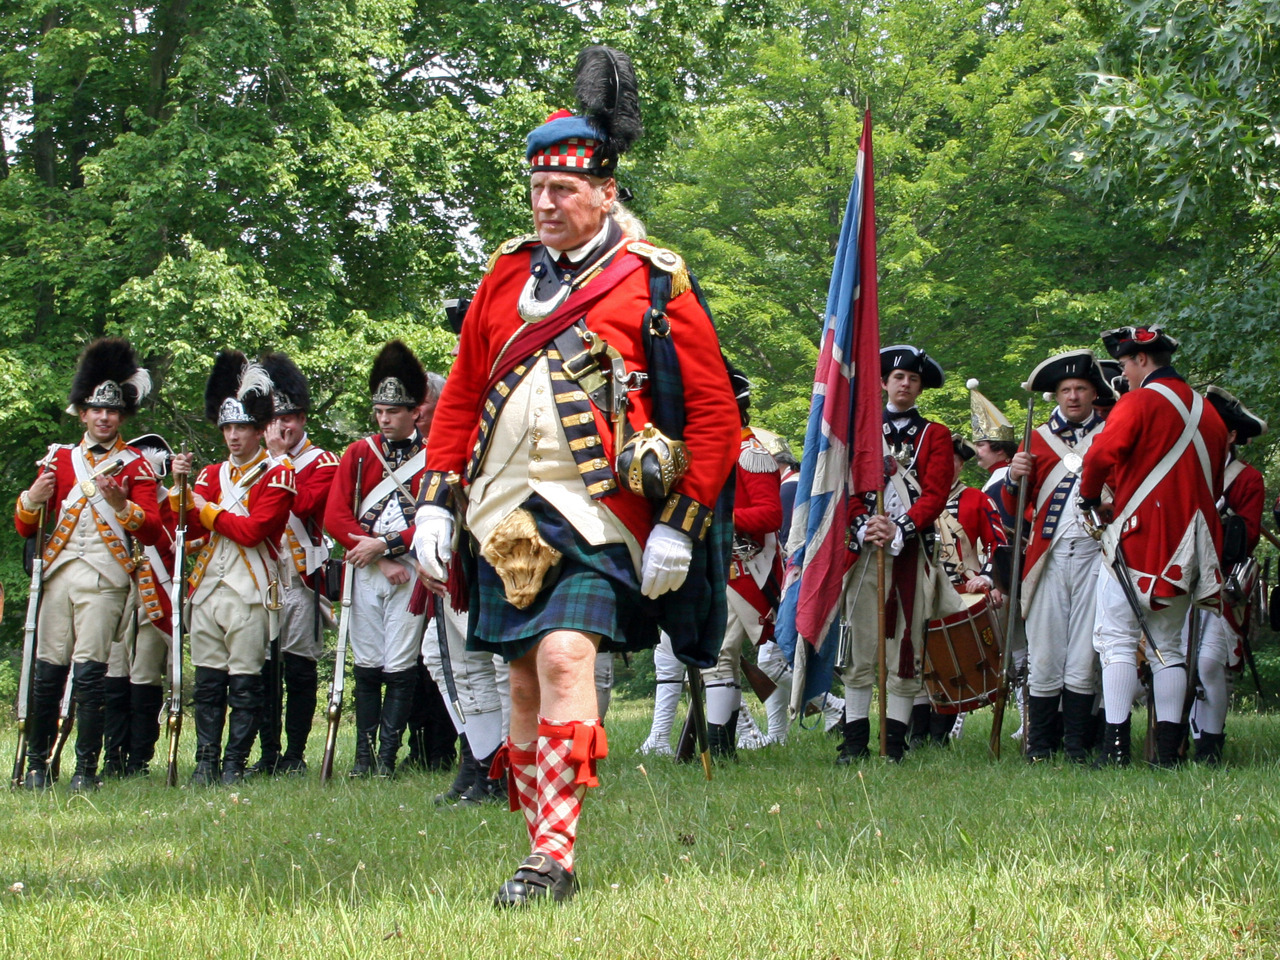 battle of monmouth In the battle of monmouth, american soldiers attacked the british from behind, winning for the americans an important victory.